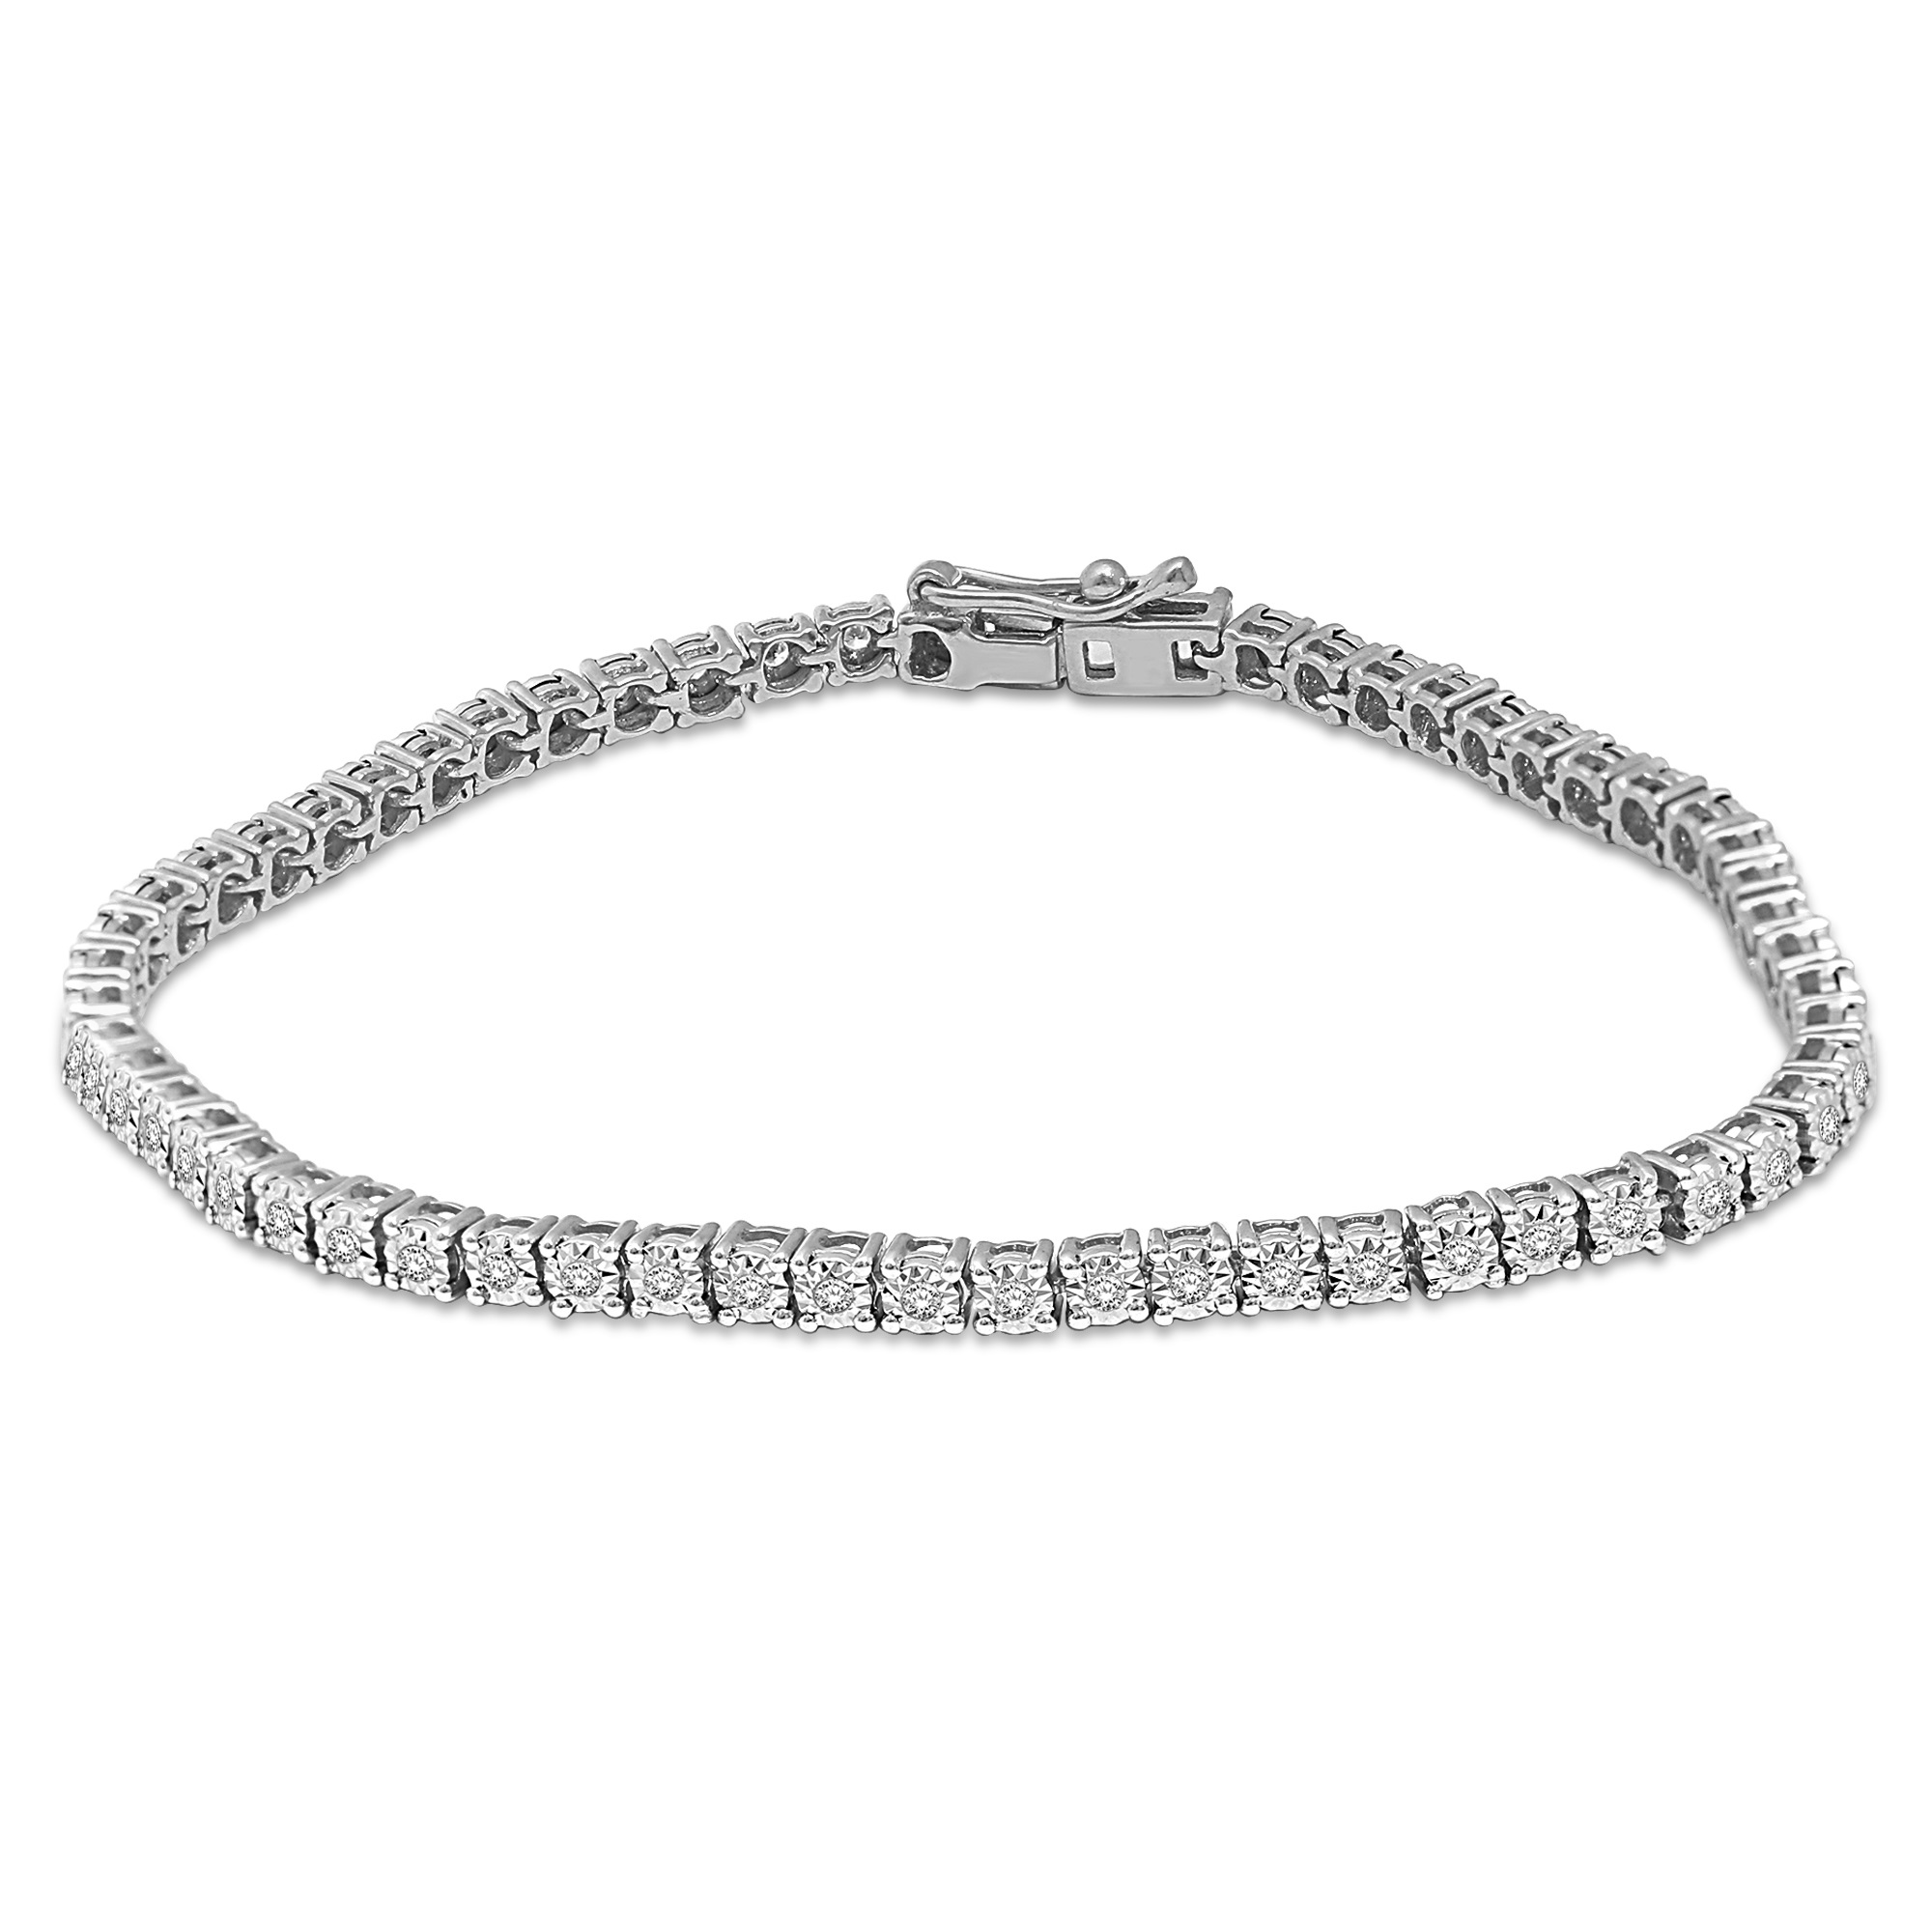 Bracelet tennis pour femme - Or blanc 14K & Diamants totalisant 1.00 Carat